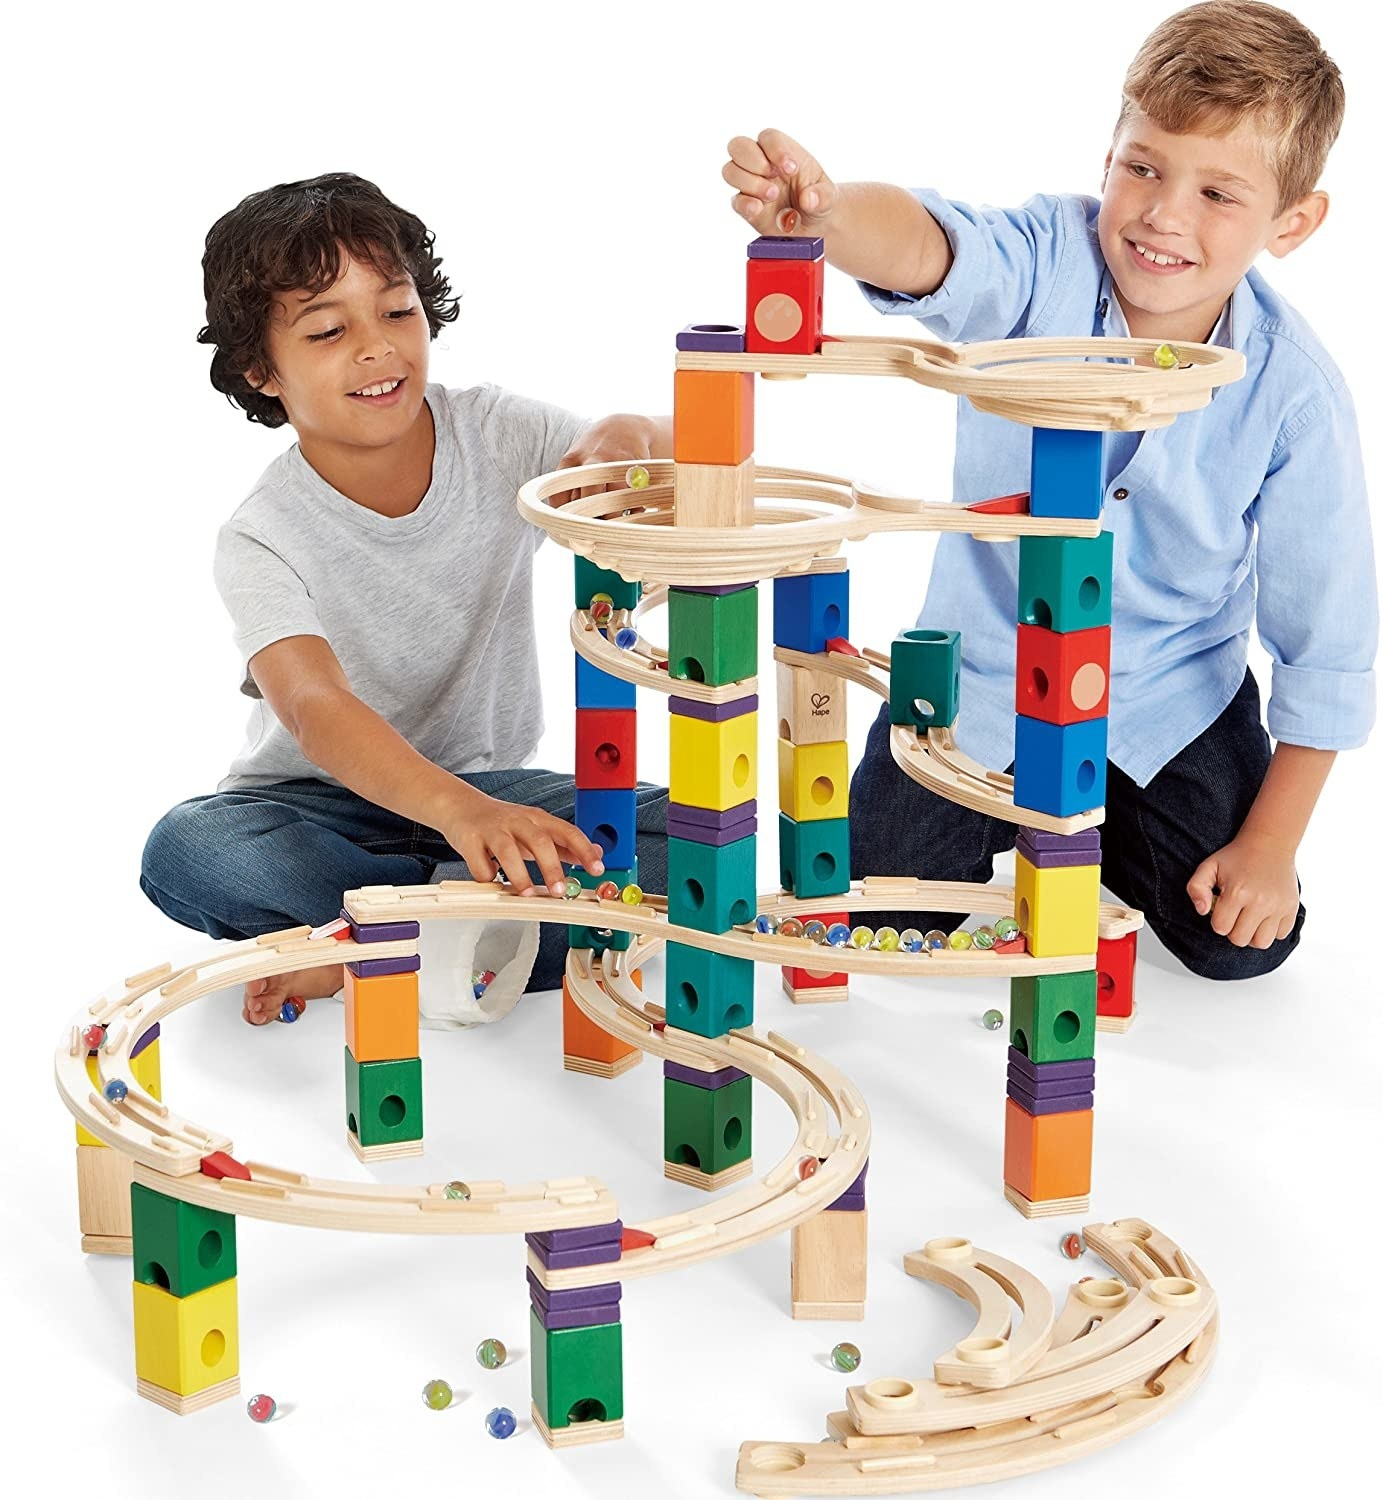 Two boys play with marbles on a wooden marble run set.